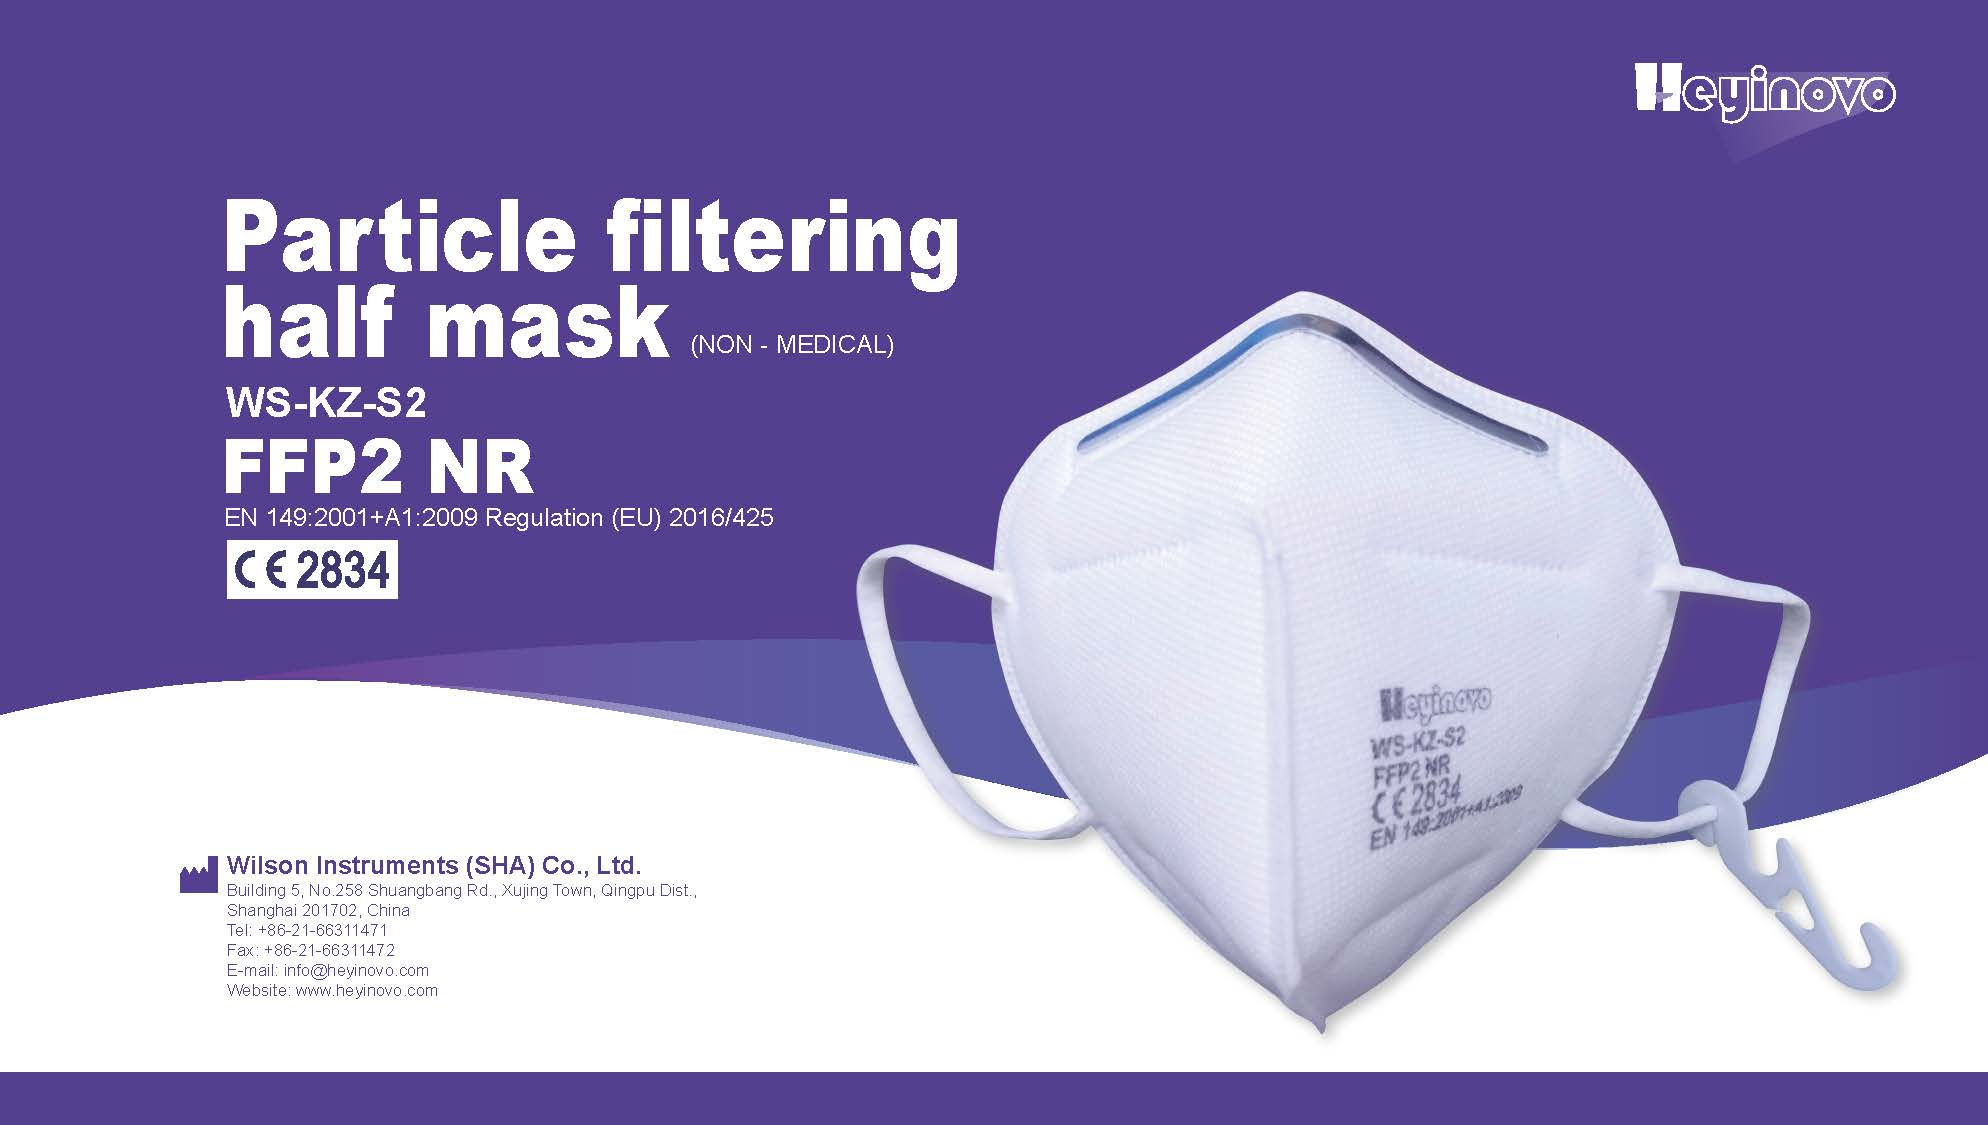 Particle filtering half mask